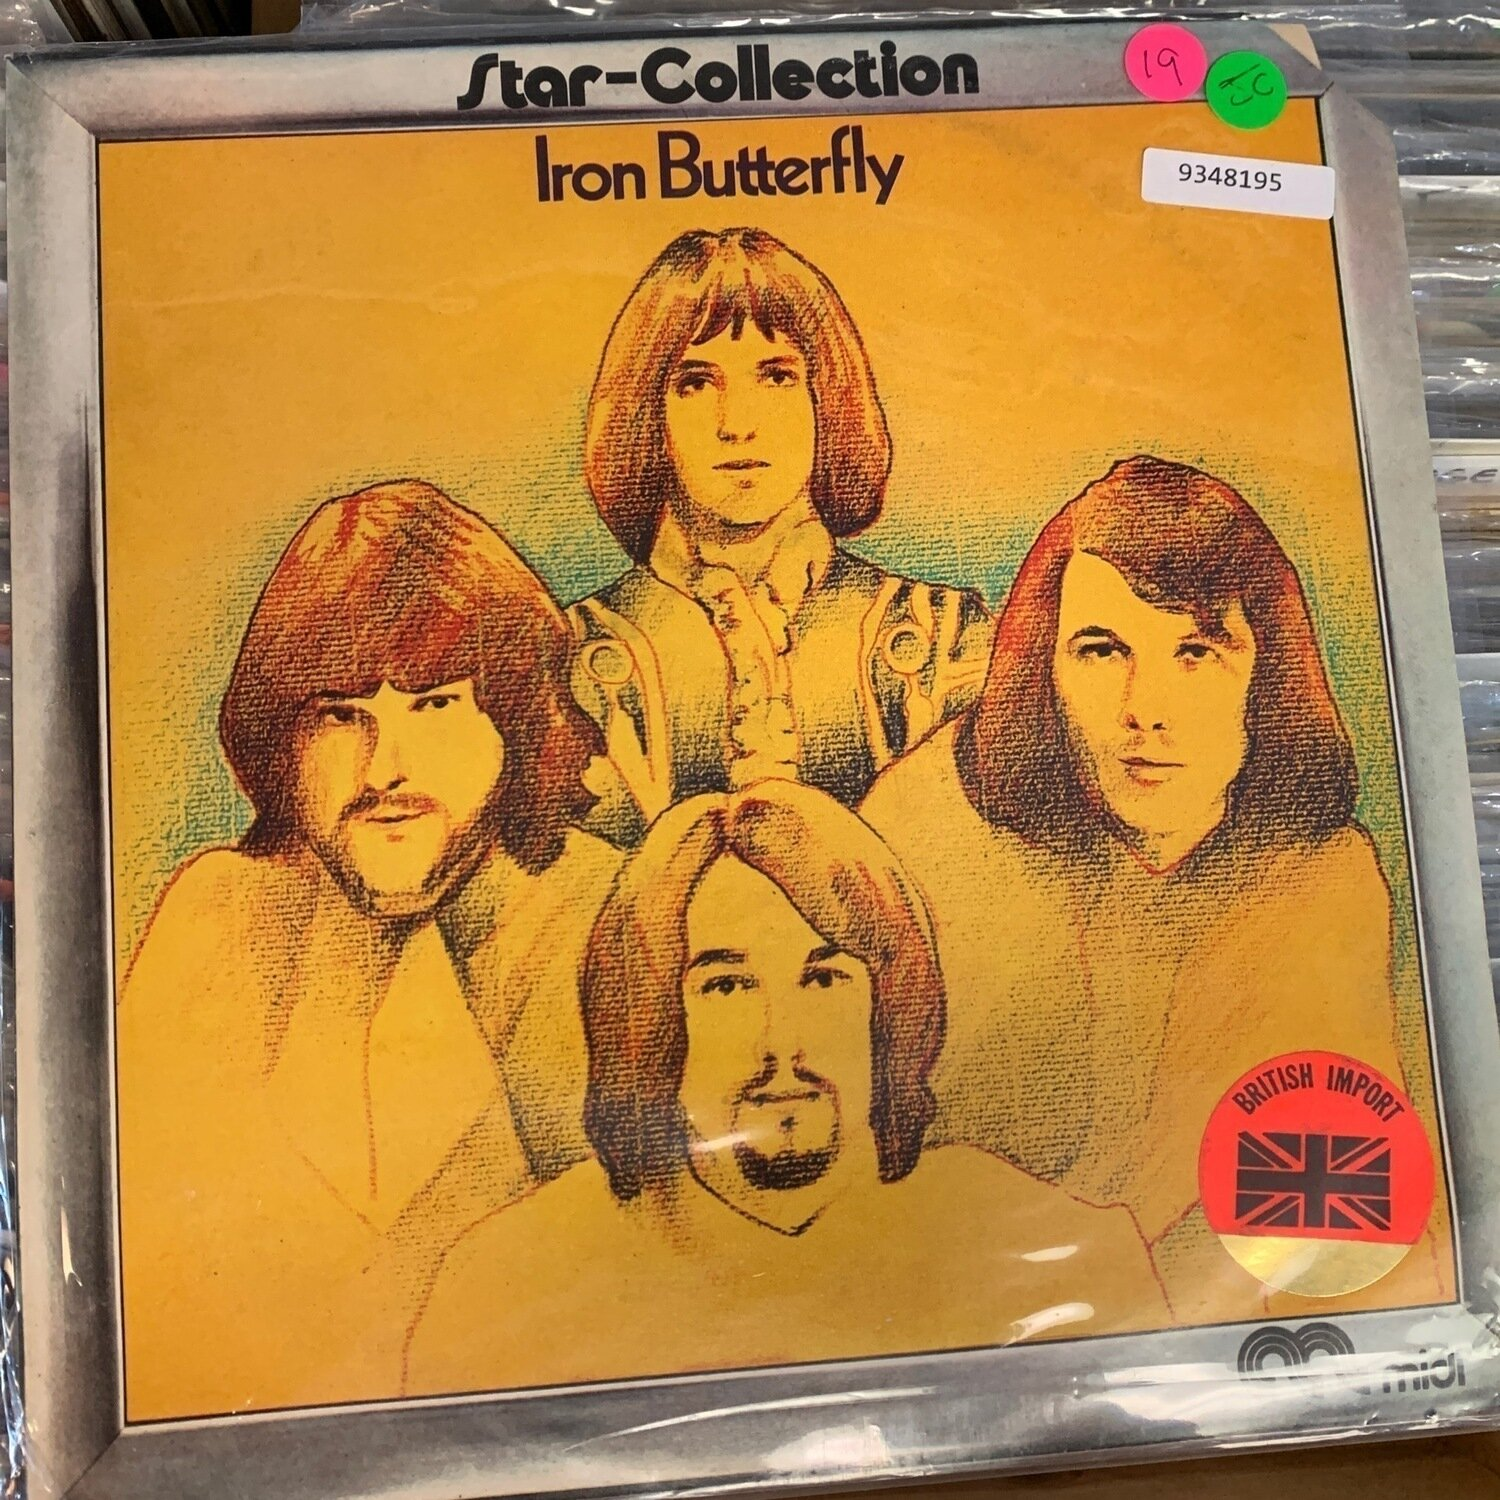 Iron Butterfly - Star-Collection British Import